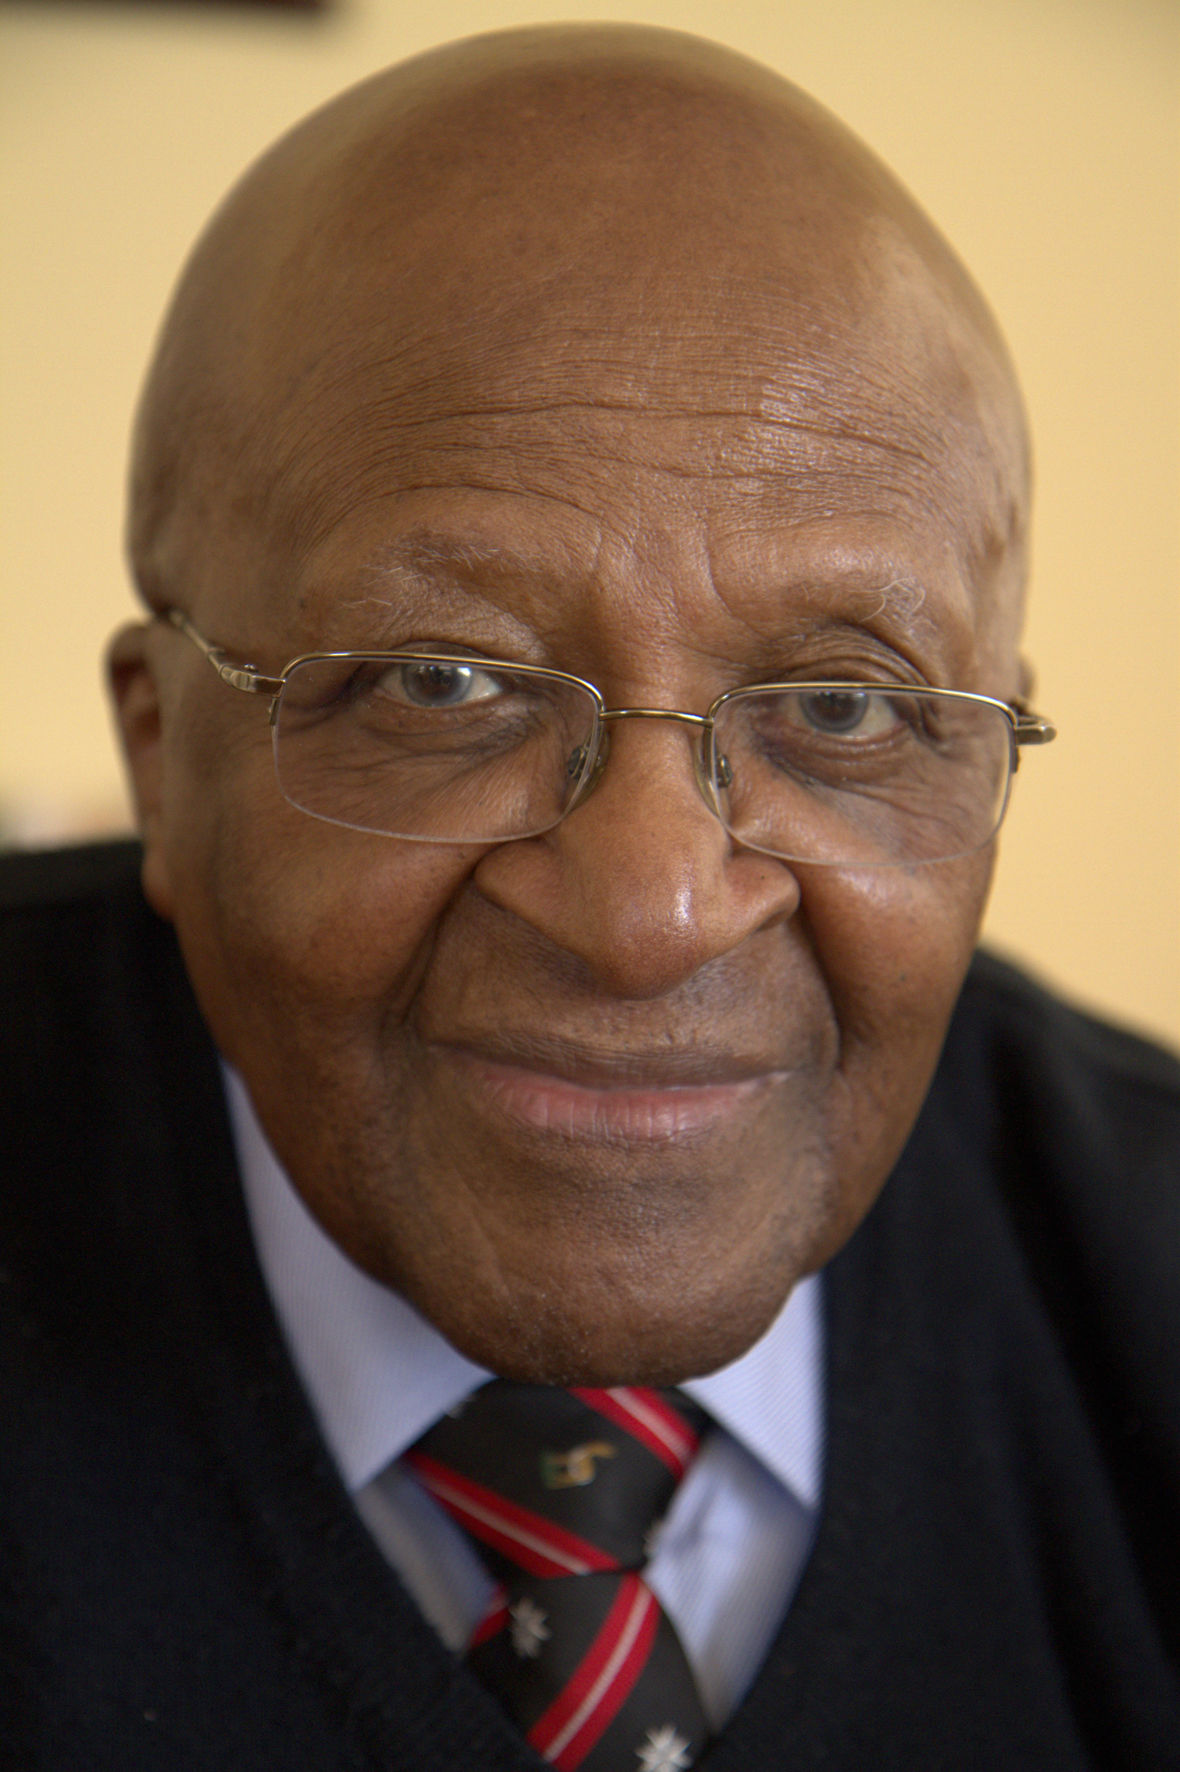 Photo of Desmond Tutu: South African churchman, politician, archbishop, Nobel Prize winner